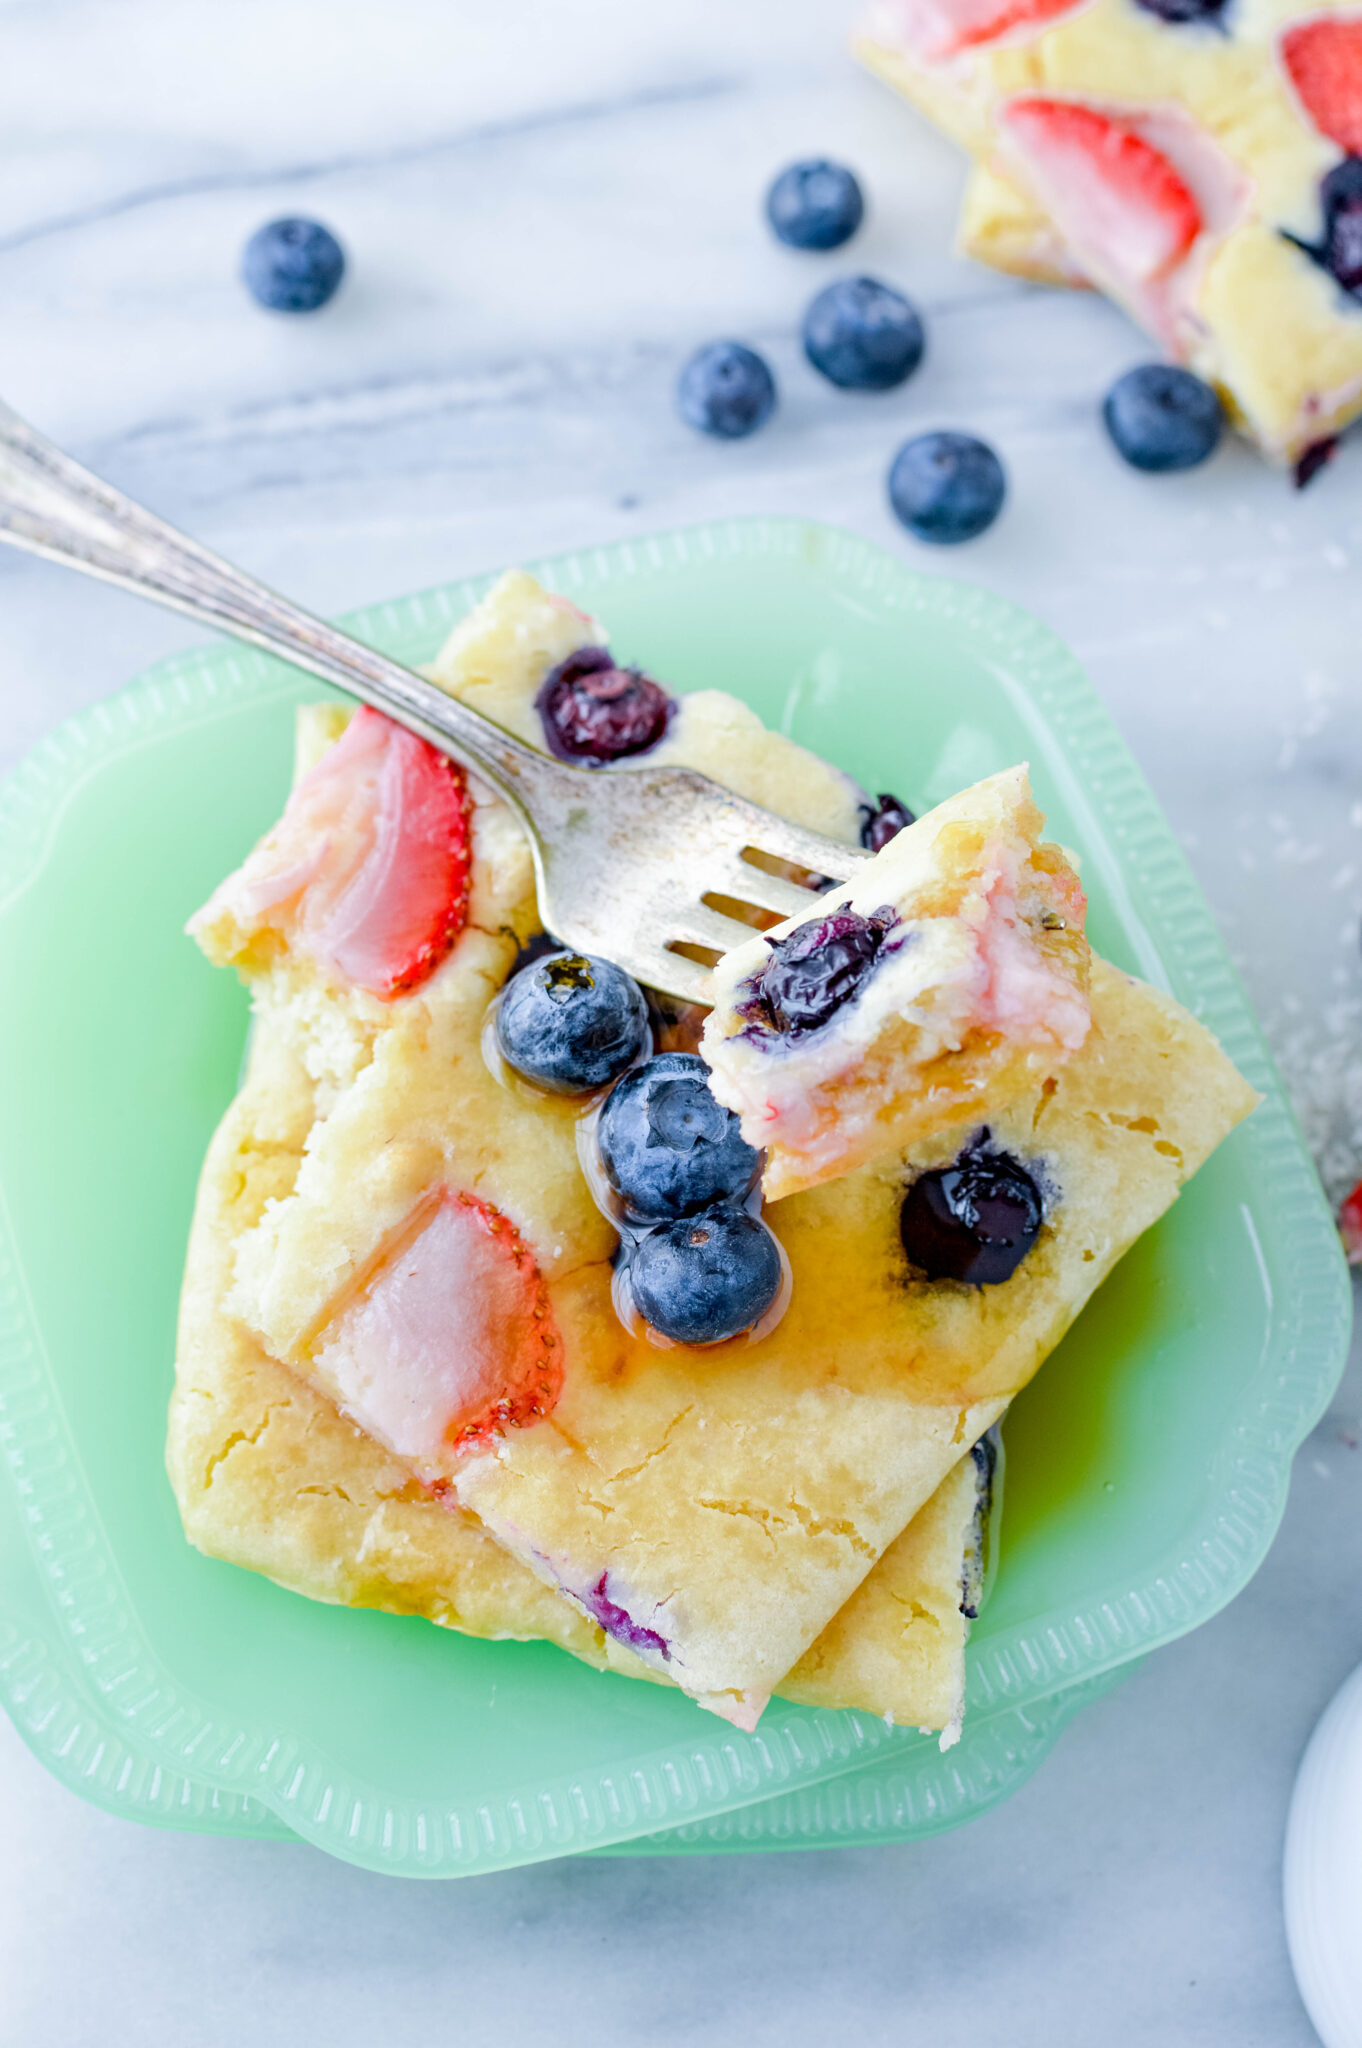 a plate of sheet pan pancakes with fruit and syrup on top.